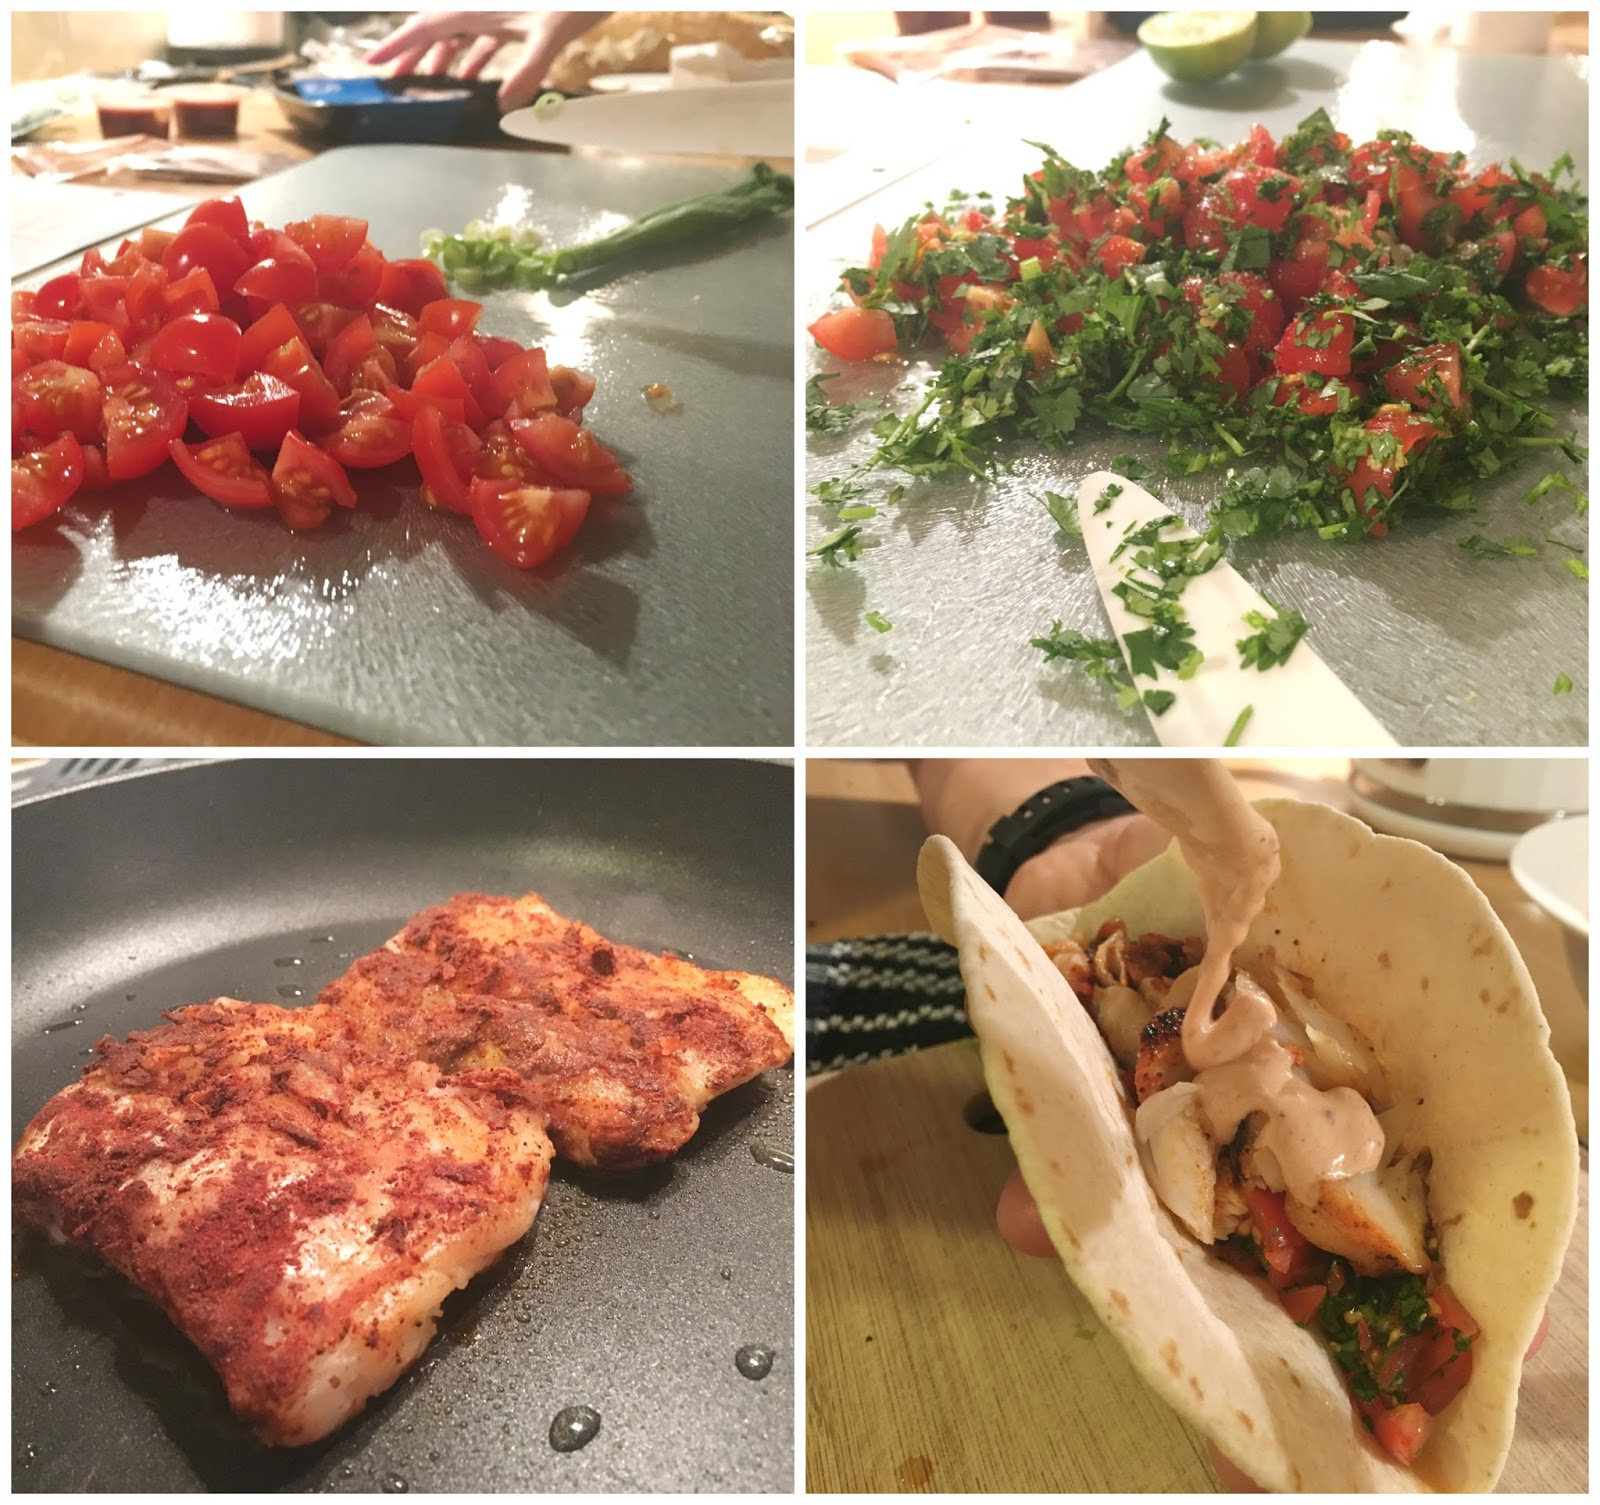 Gusto cooking \ recipes \ food \ subscription \ food blogger \ Priceless Life of Mine \ Over 40 lifestyle blog